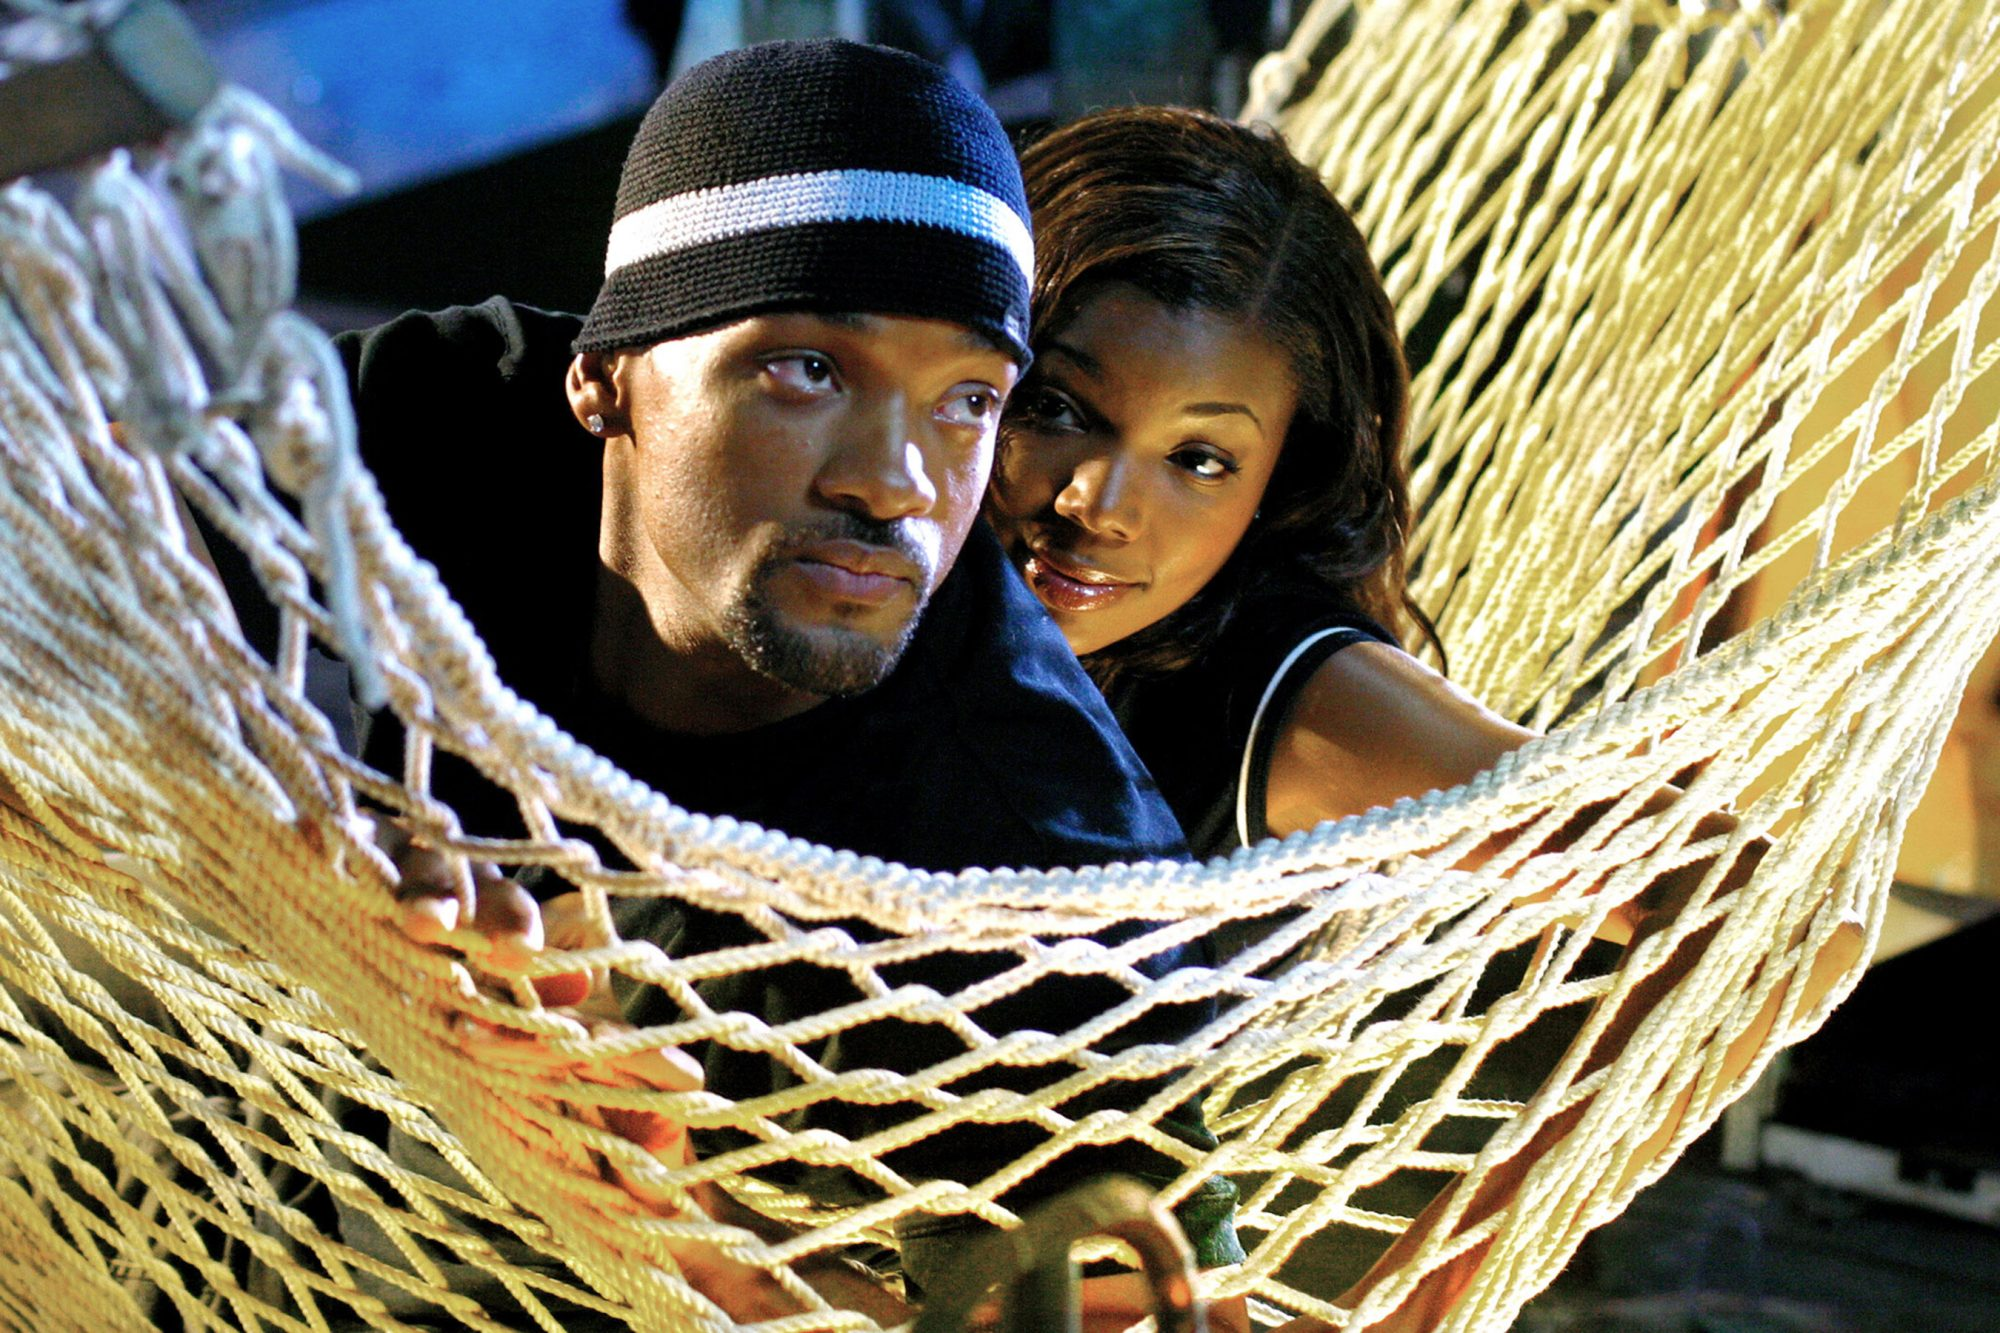 BAD BOYS 2, Will Smith, Gabrielle Union, 2003, (c) Columbia/courtesy Everett Collection